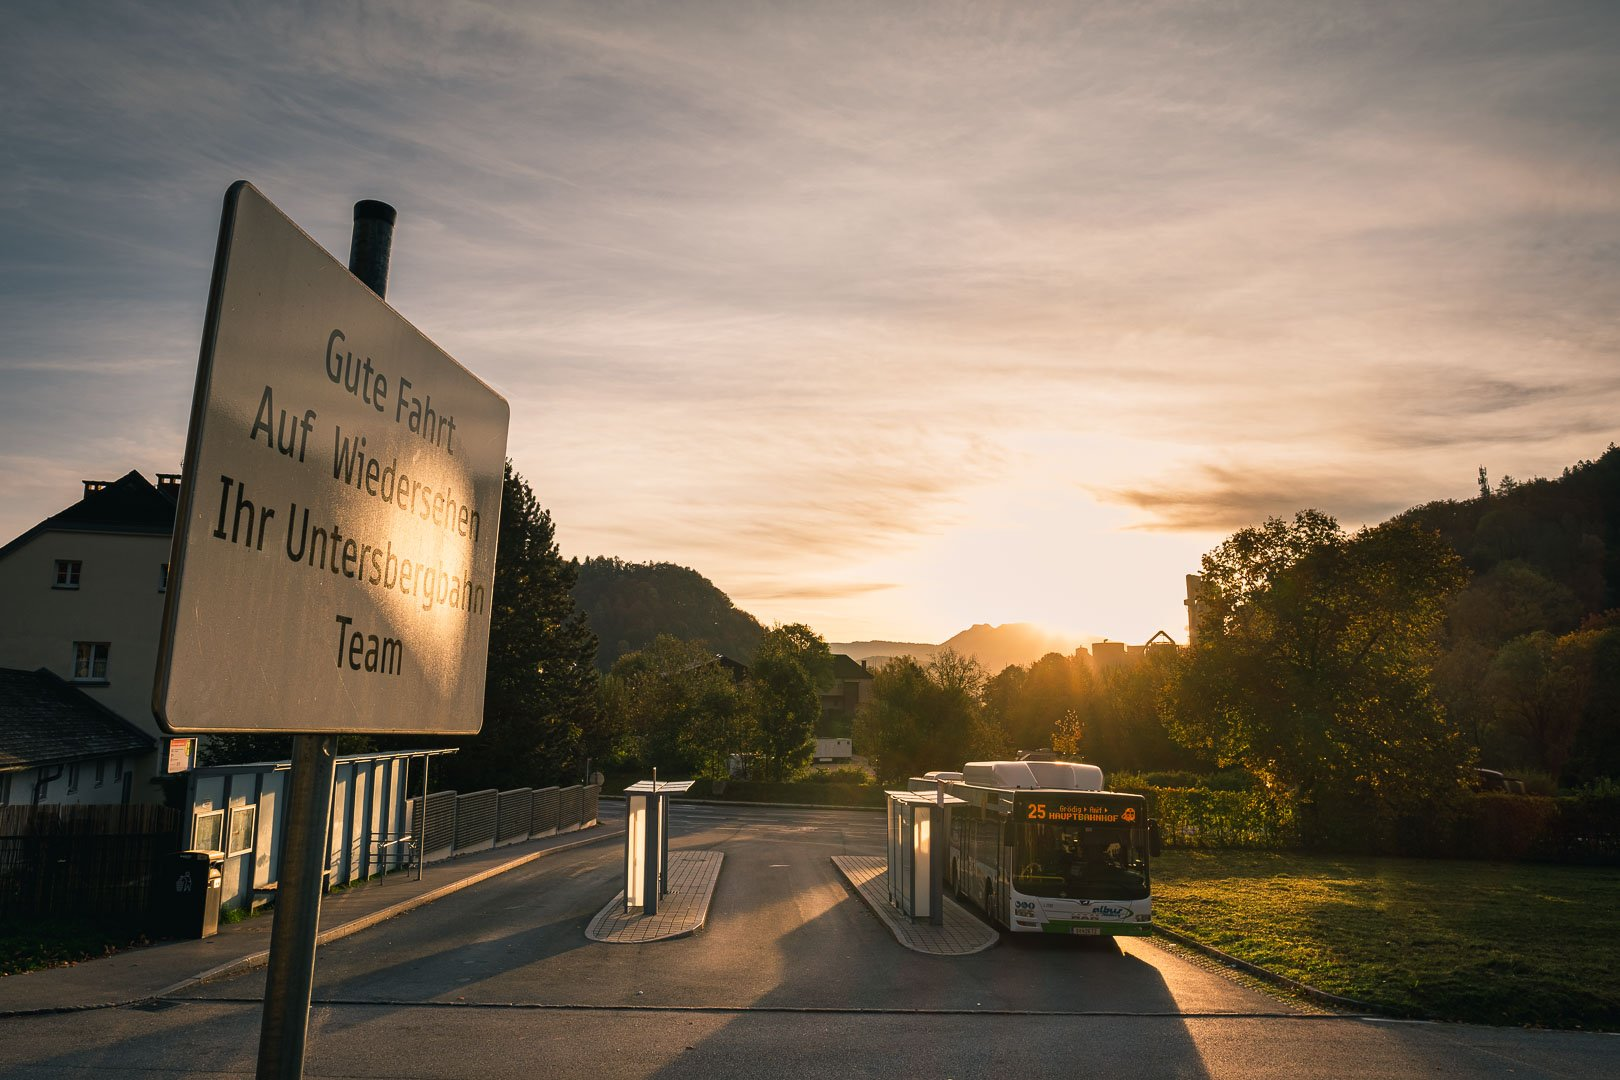 Sunrise at the bus stop for number 25 in front of the Untersberg cable car